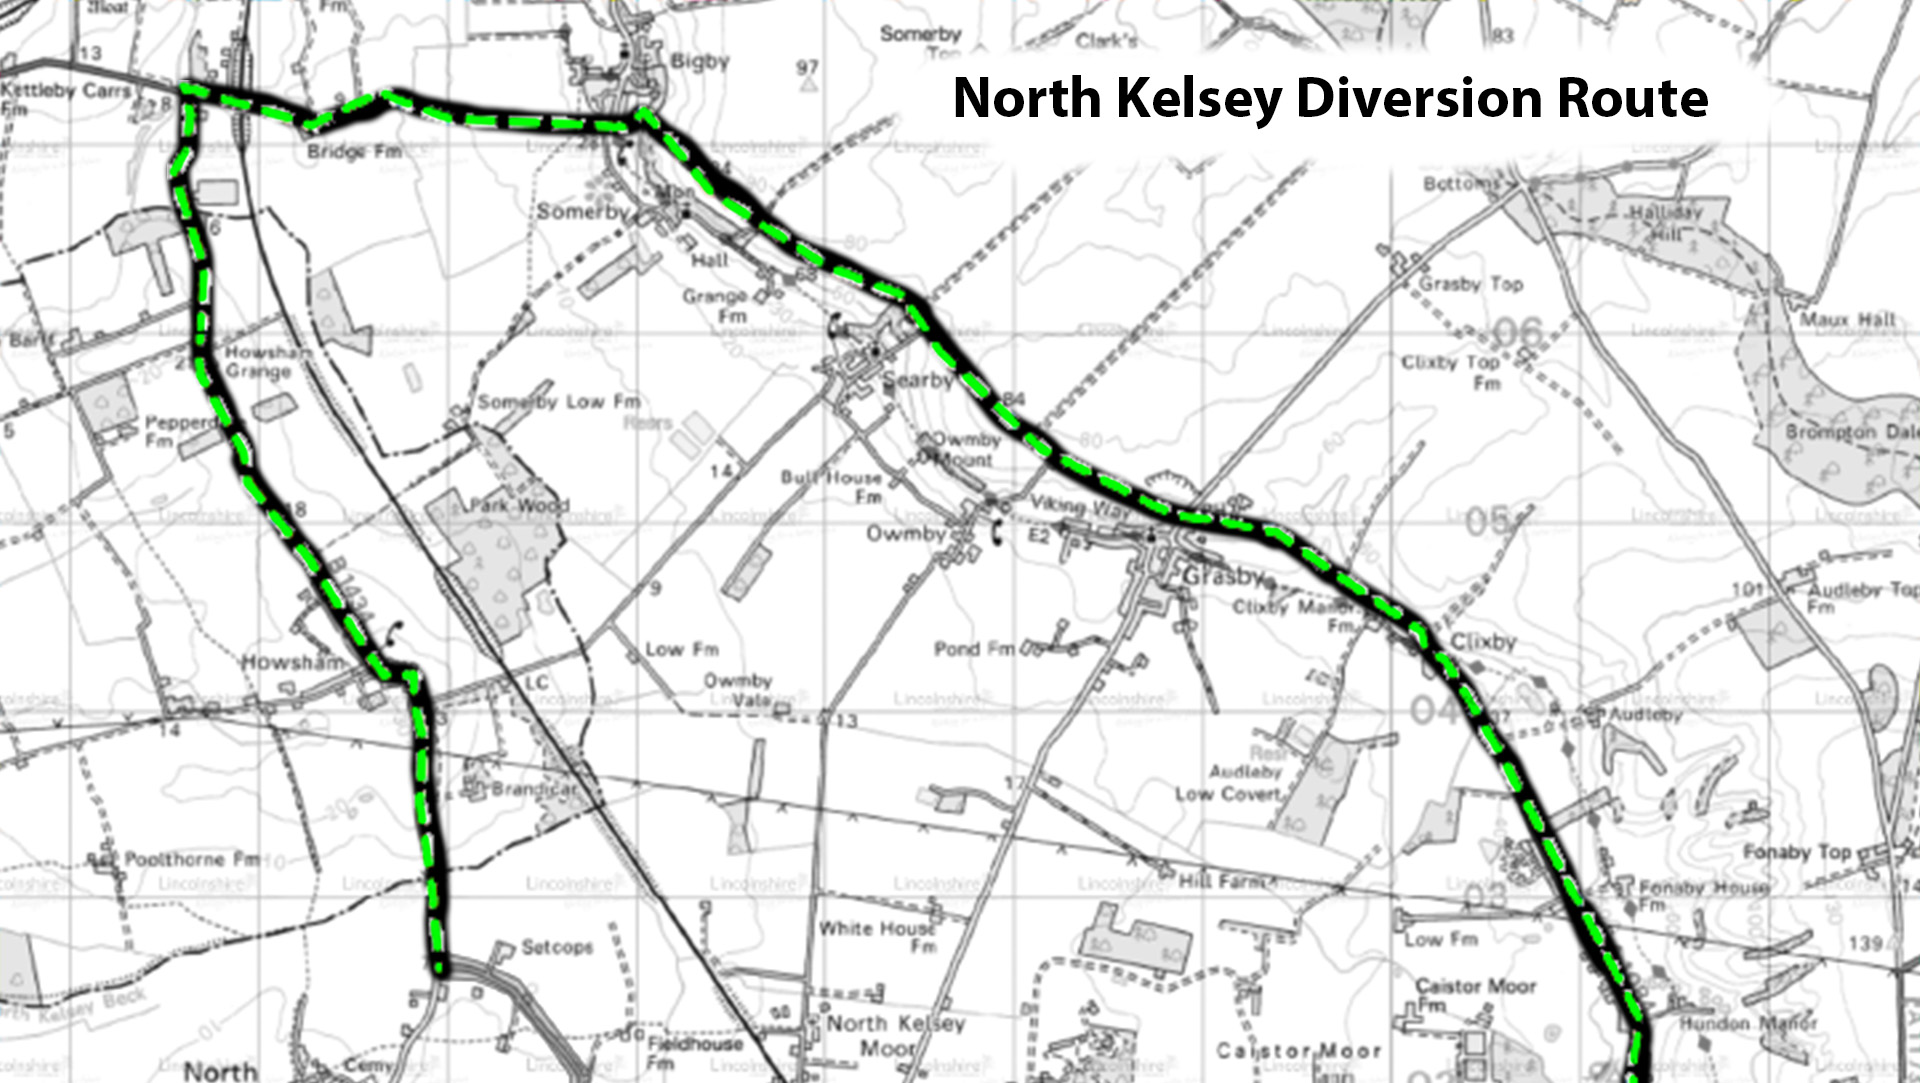 Diversion route b1434 north kelsey graphic